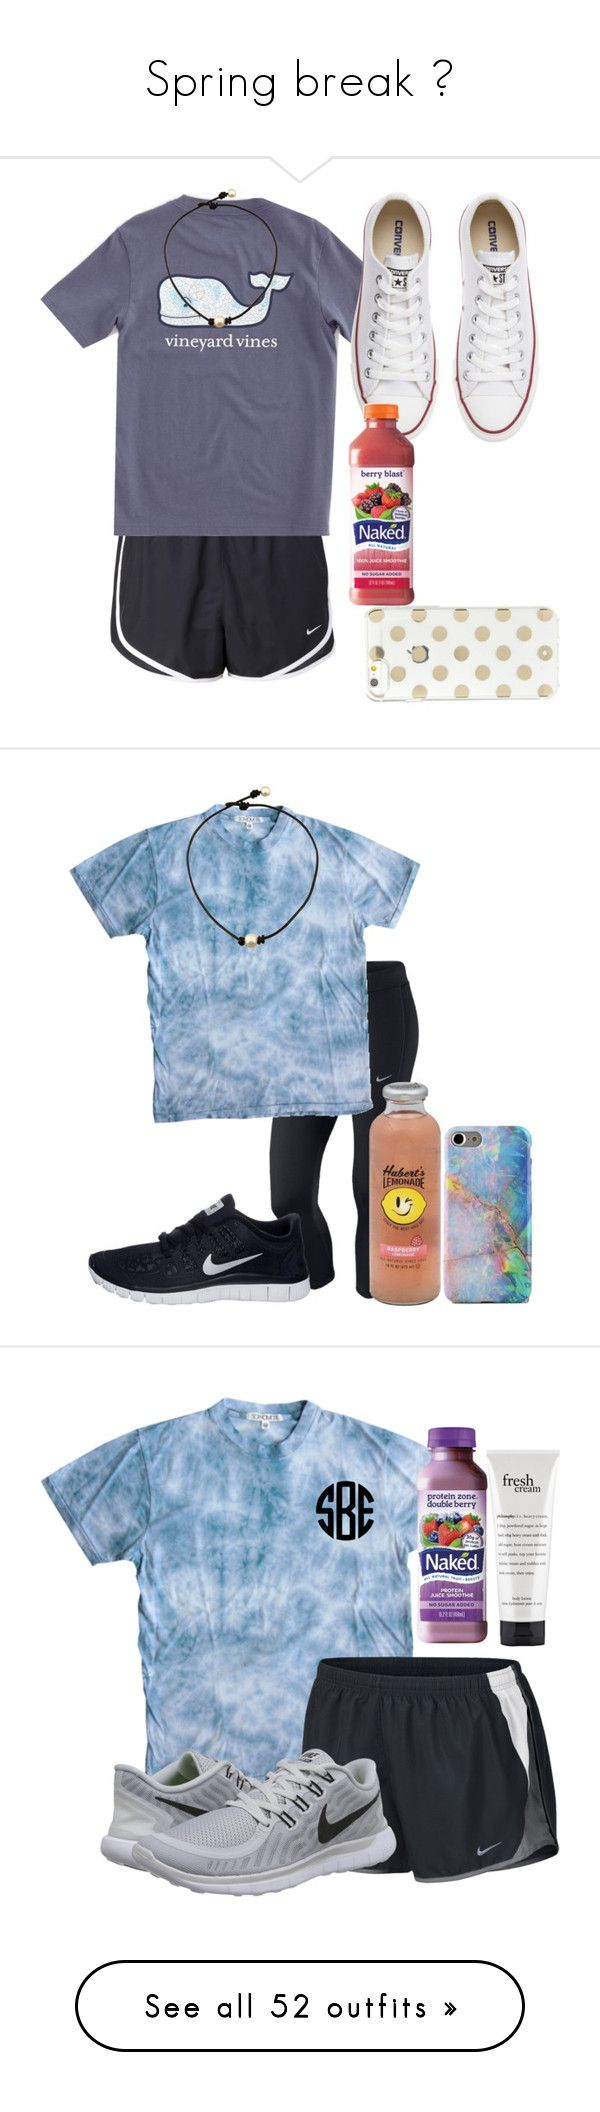 """Spring break "" by wander-krn ❤ liked on Polyvore featuring NIKE, Vineyard Vines, Converse, Kate Spade, Sophomore, Hansen, philosophy, Zone, Chaco and Harding-Lane"